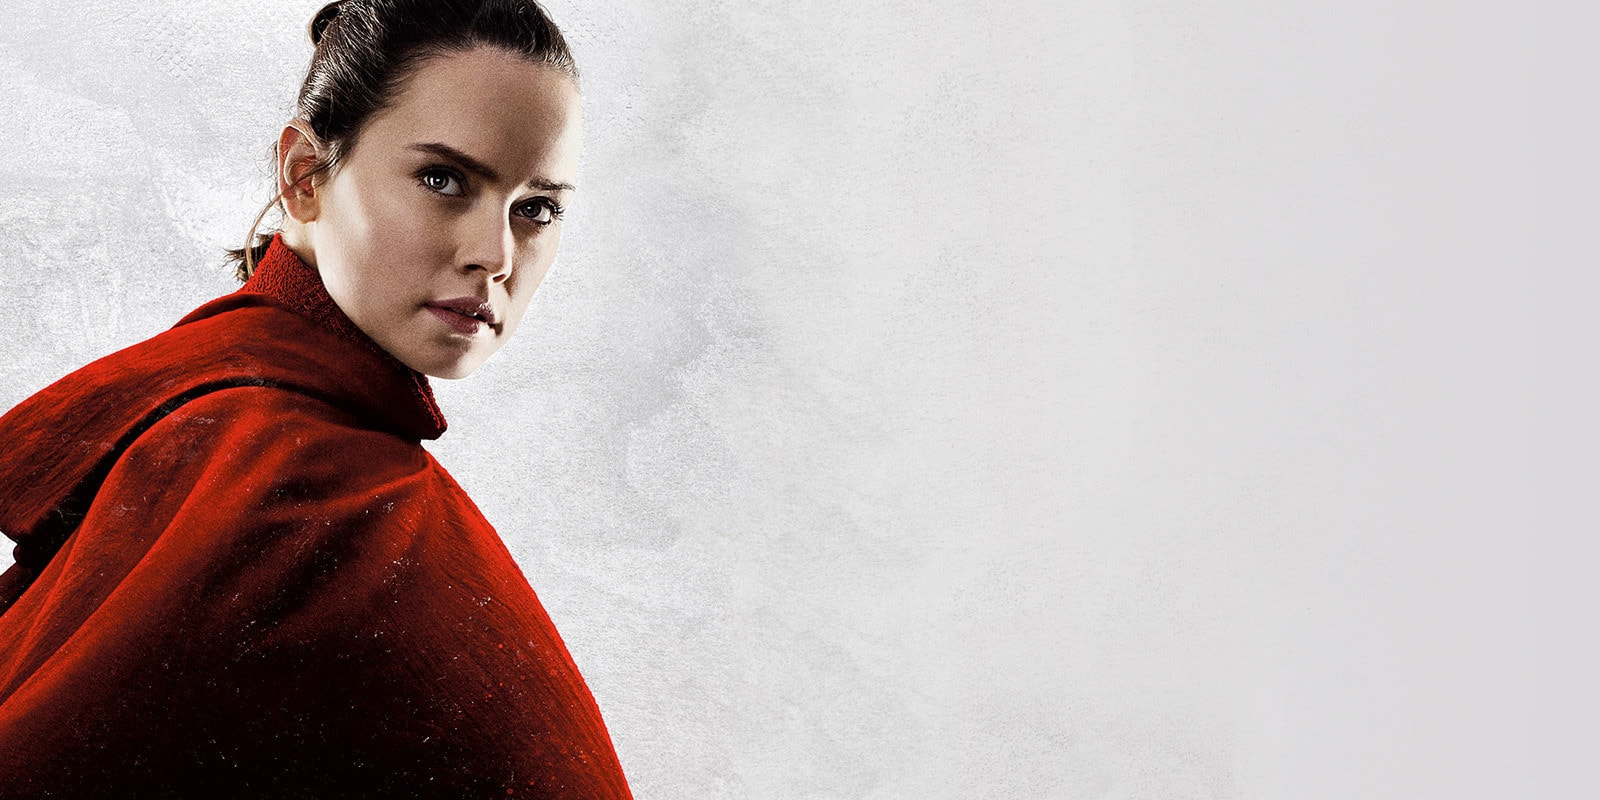 ZA - Star Wars The Last Jedi - Flex-Content Hero Object - Synopsis